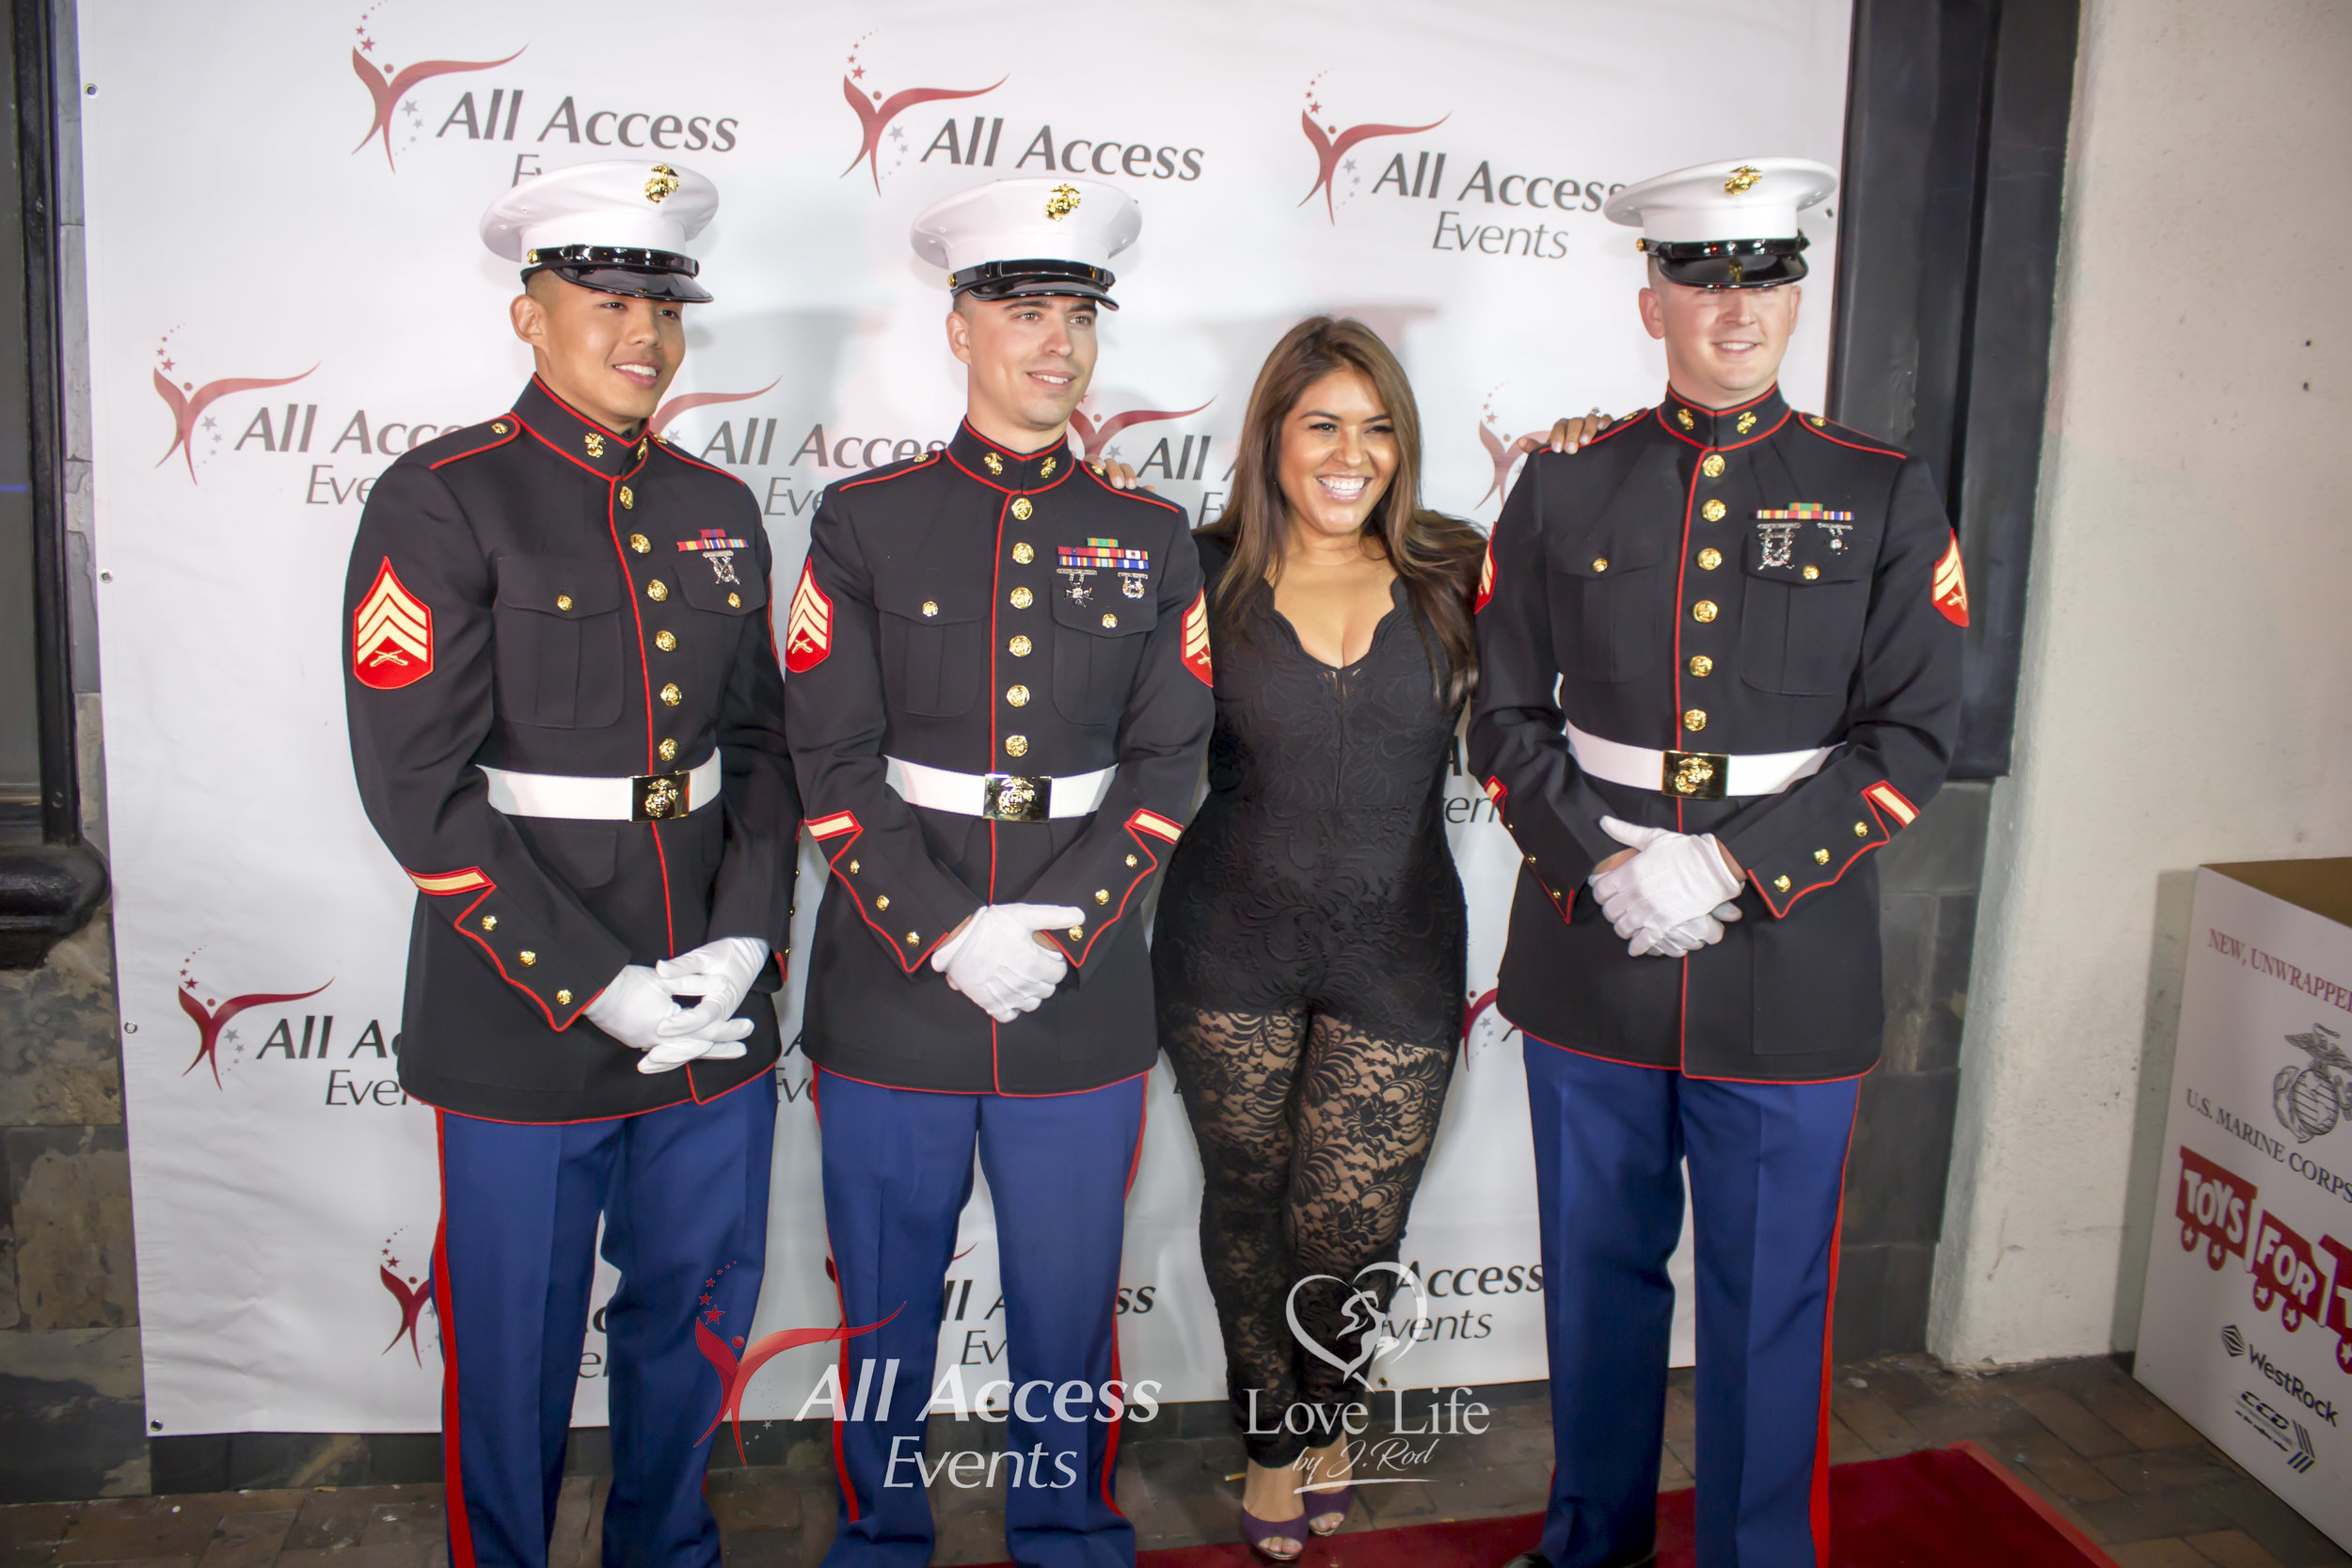 All Access Events Toy Drive - 12-13-17_112.jpg